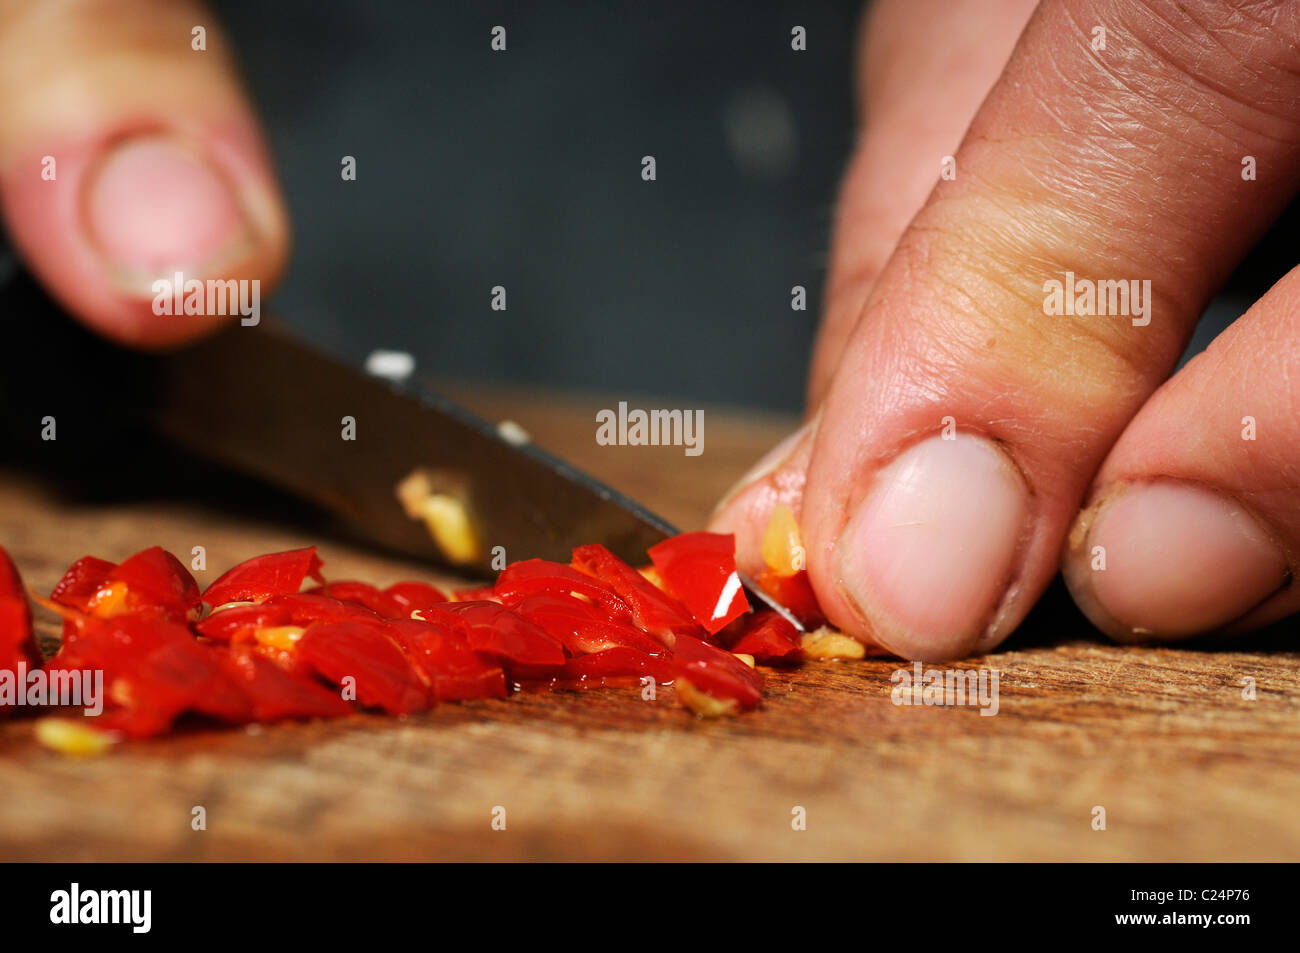 Stock photo of a woman chopping chillis on a wooden table. - Stock Image